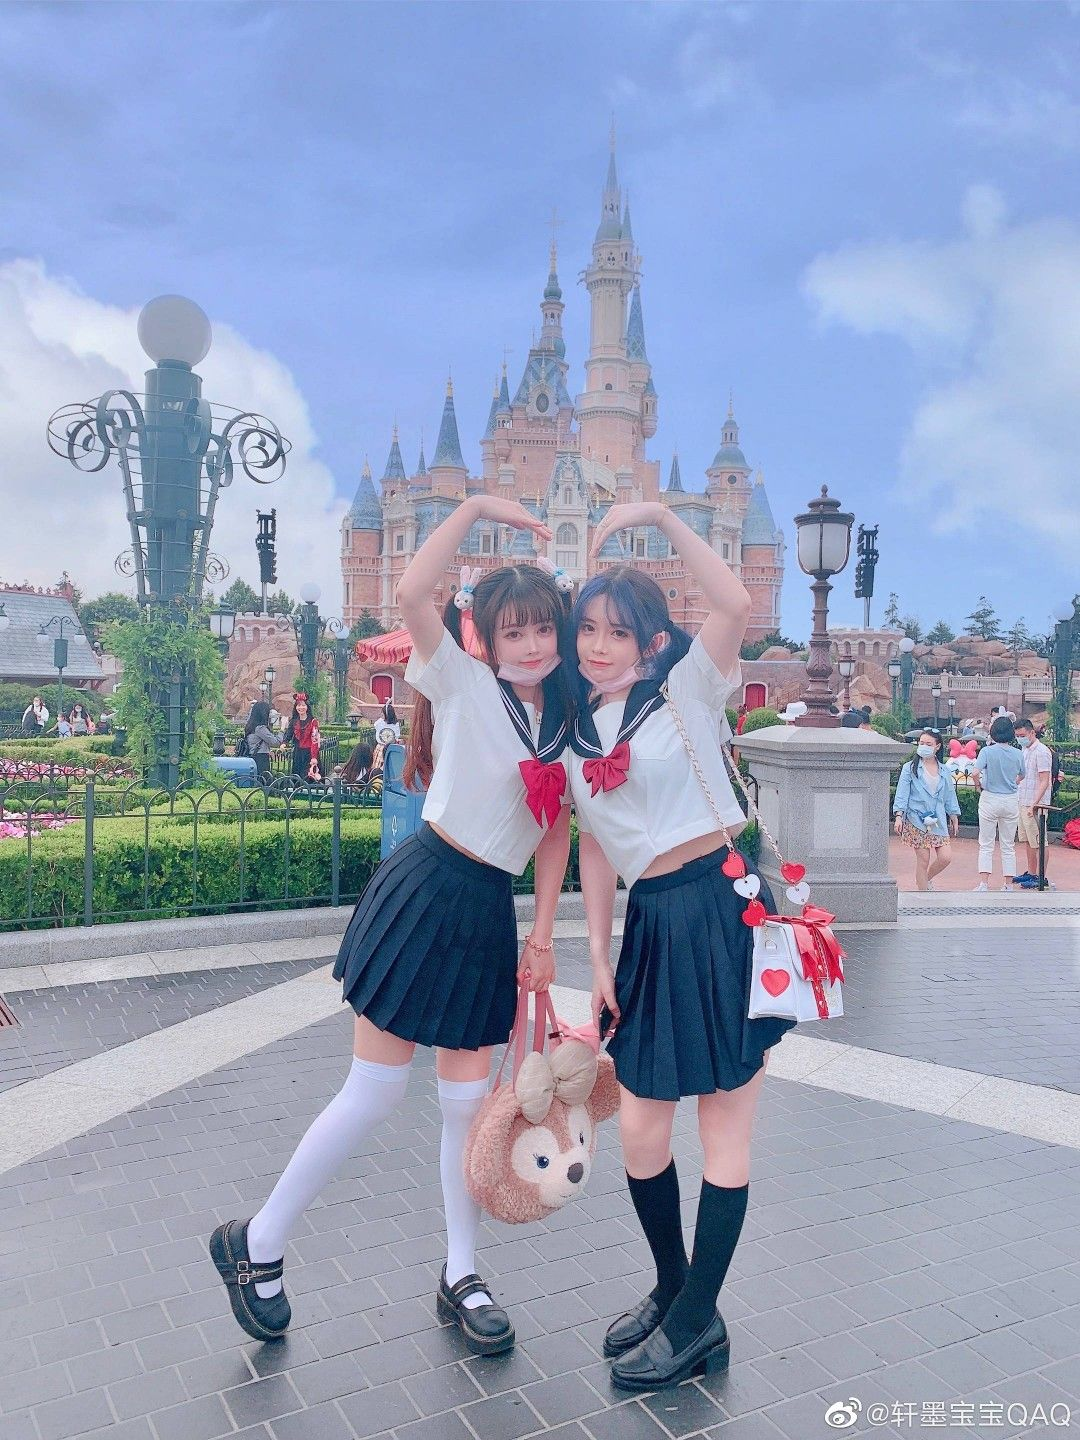 Pin by yena min on School uniforms in 2020 | Cosplay ...